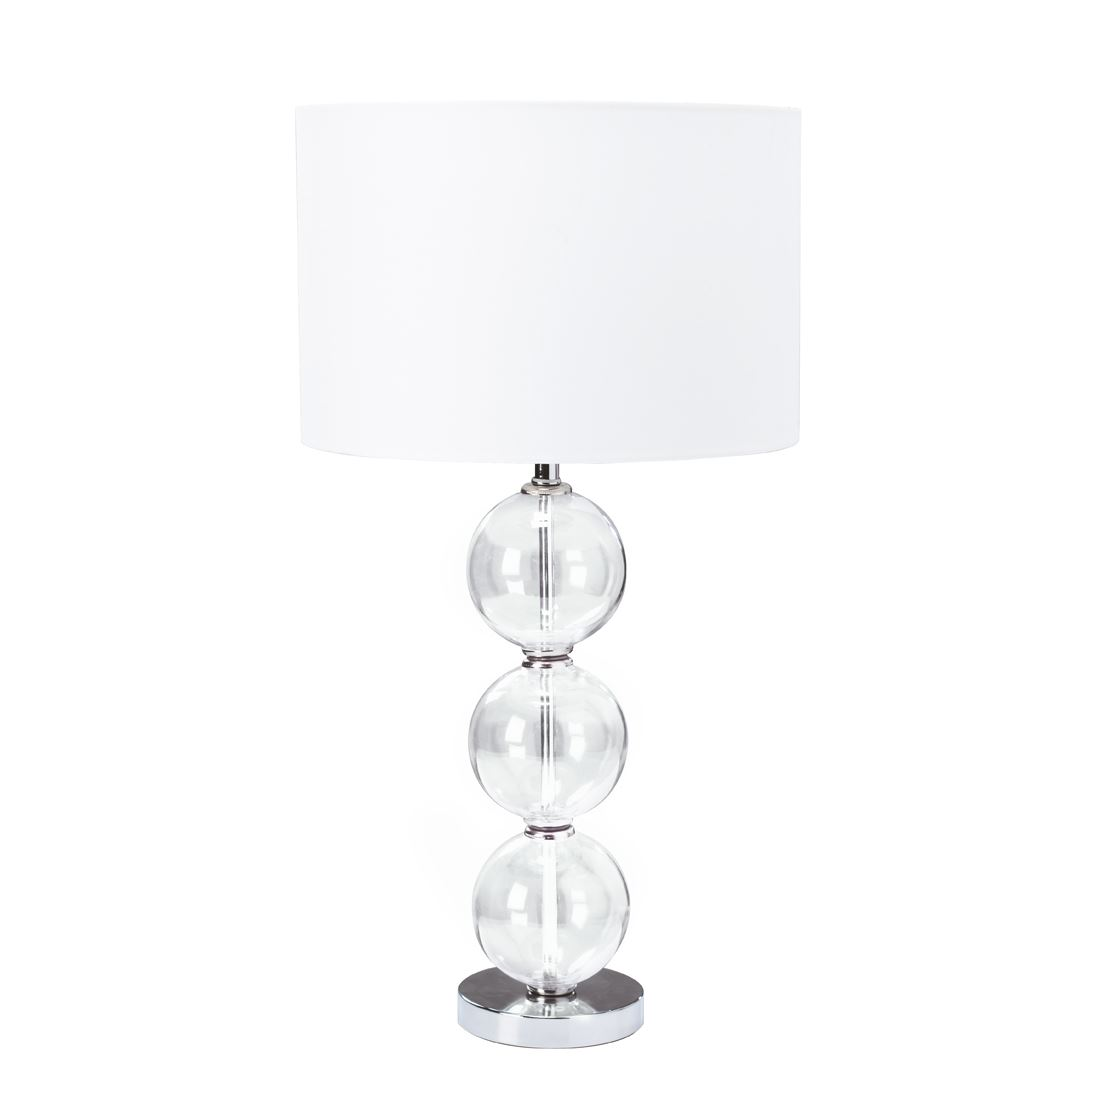 Floor Lamp (Single) - Clear Glass Ball Stacked Base, White Shade